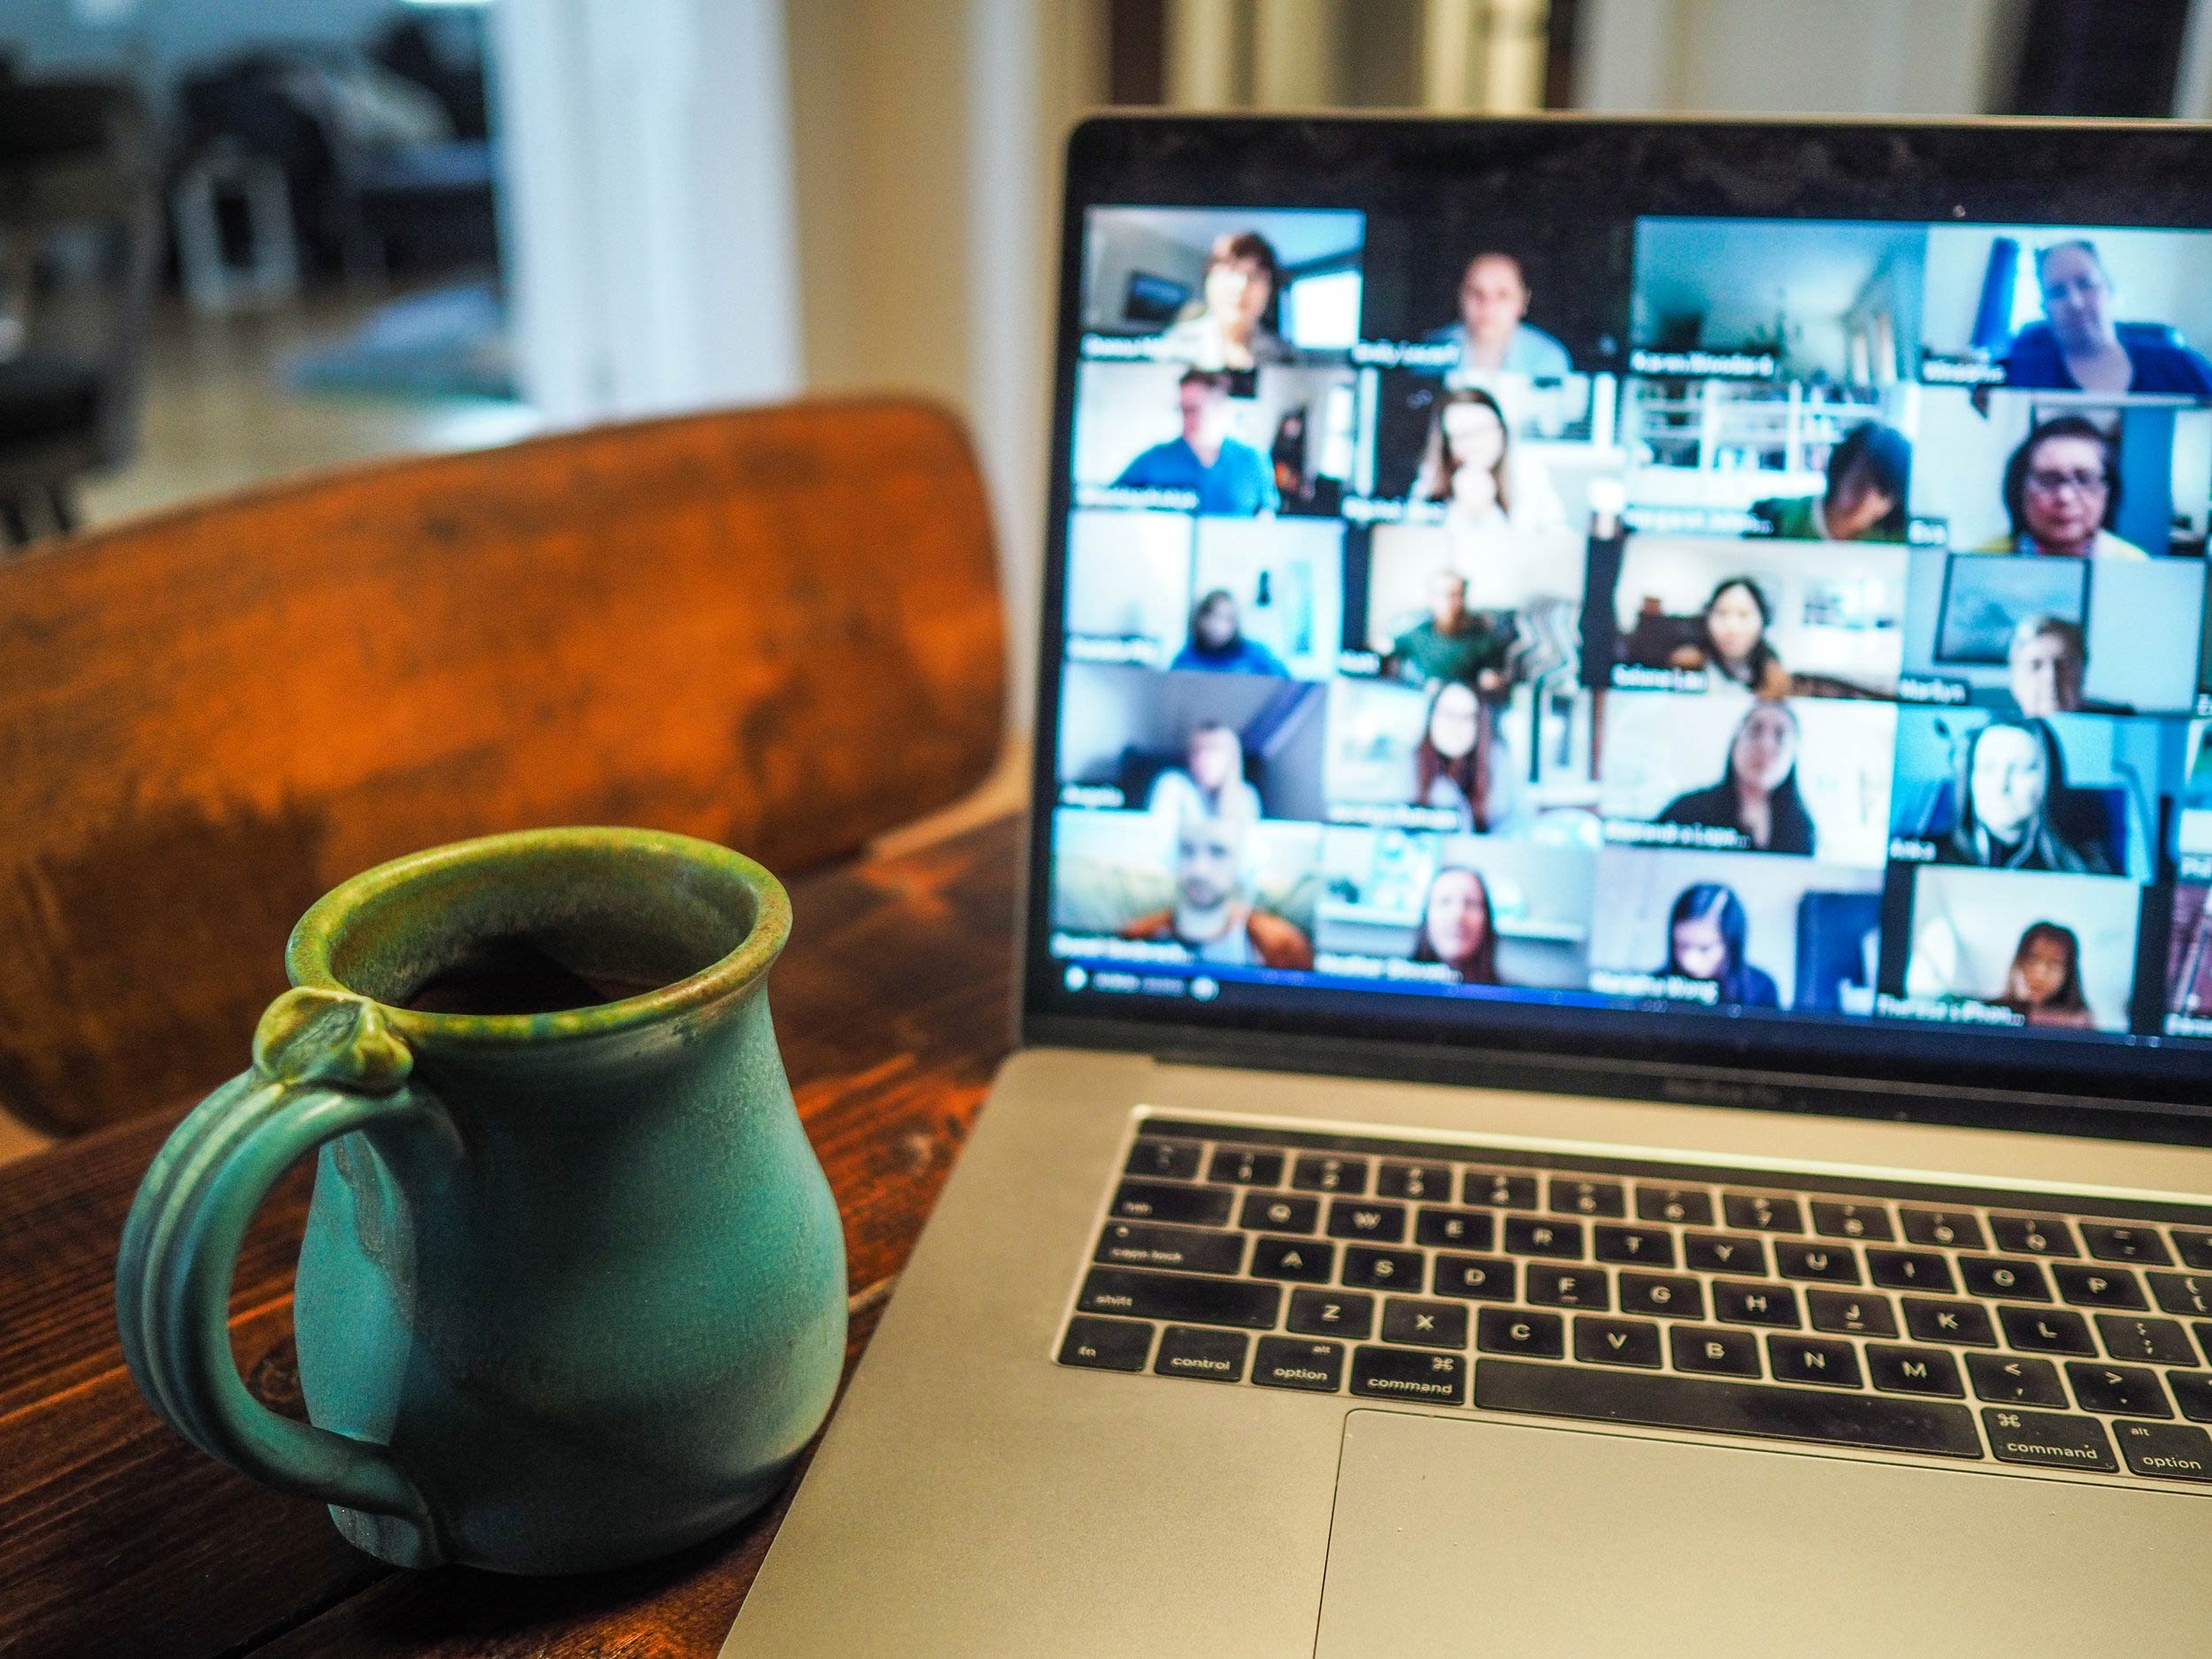 A laptop showing a video conference with a mug sitting to the side